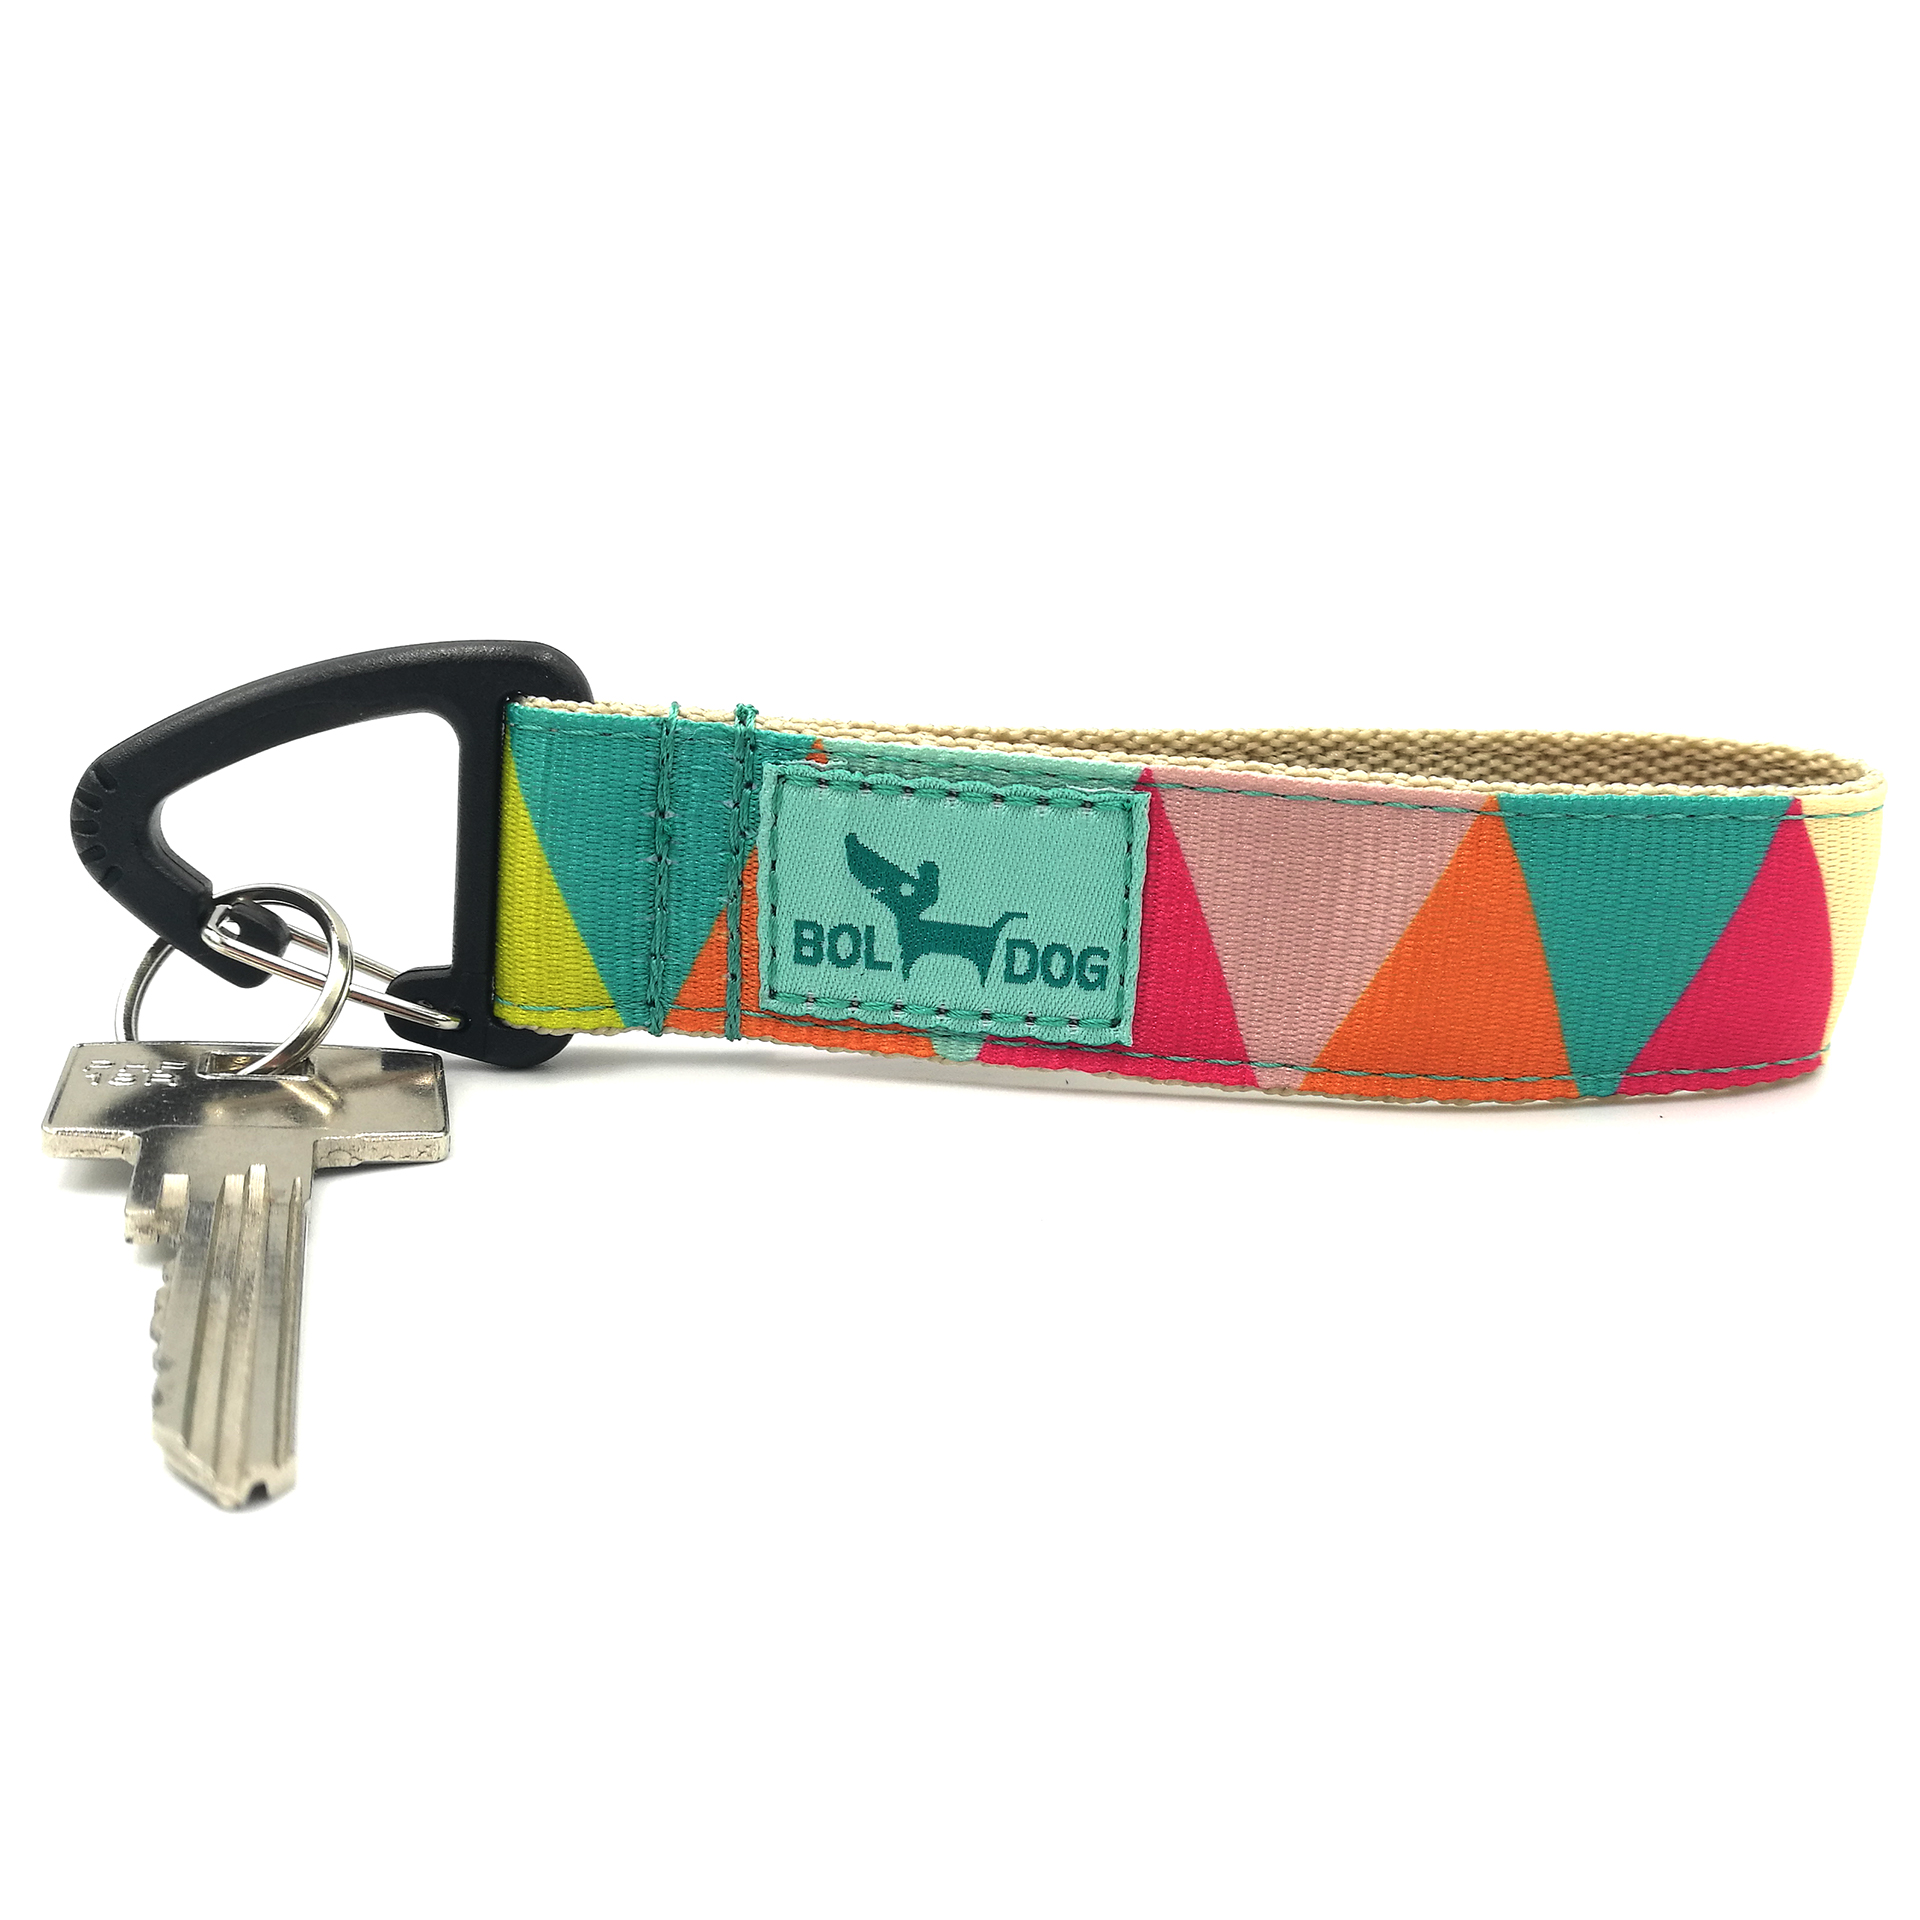 Zigzag textile key holder.